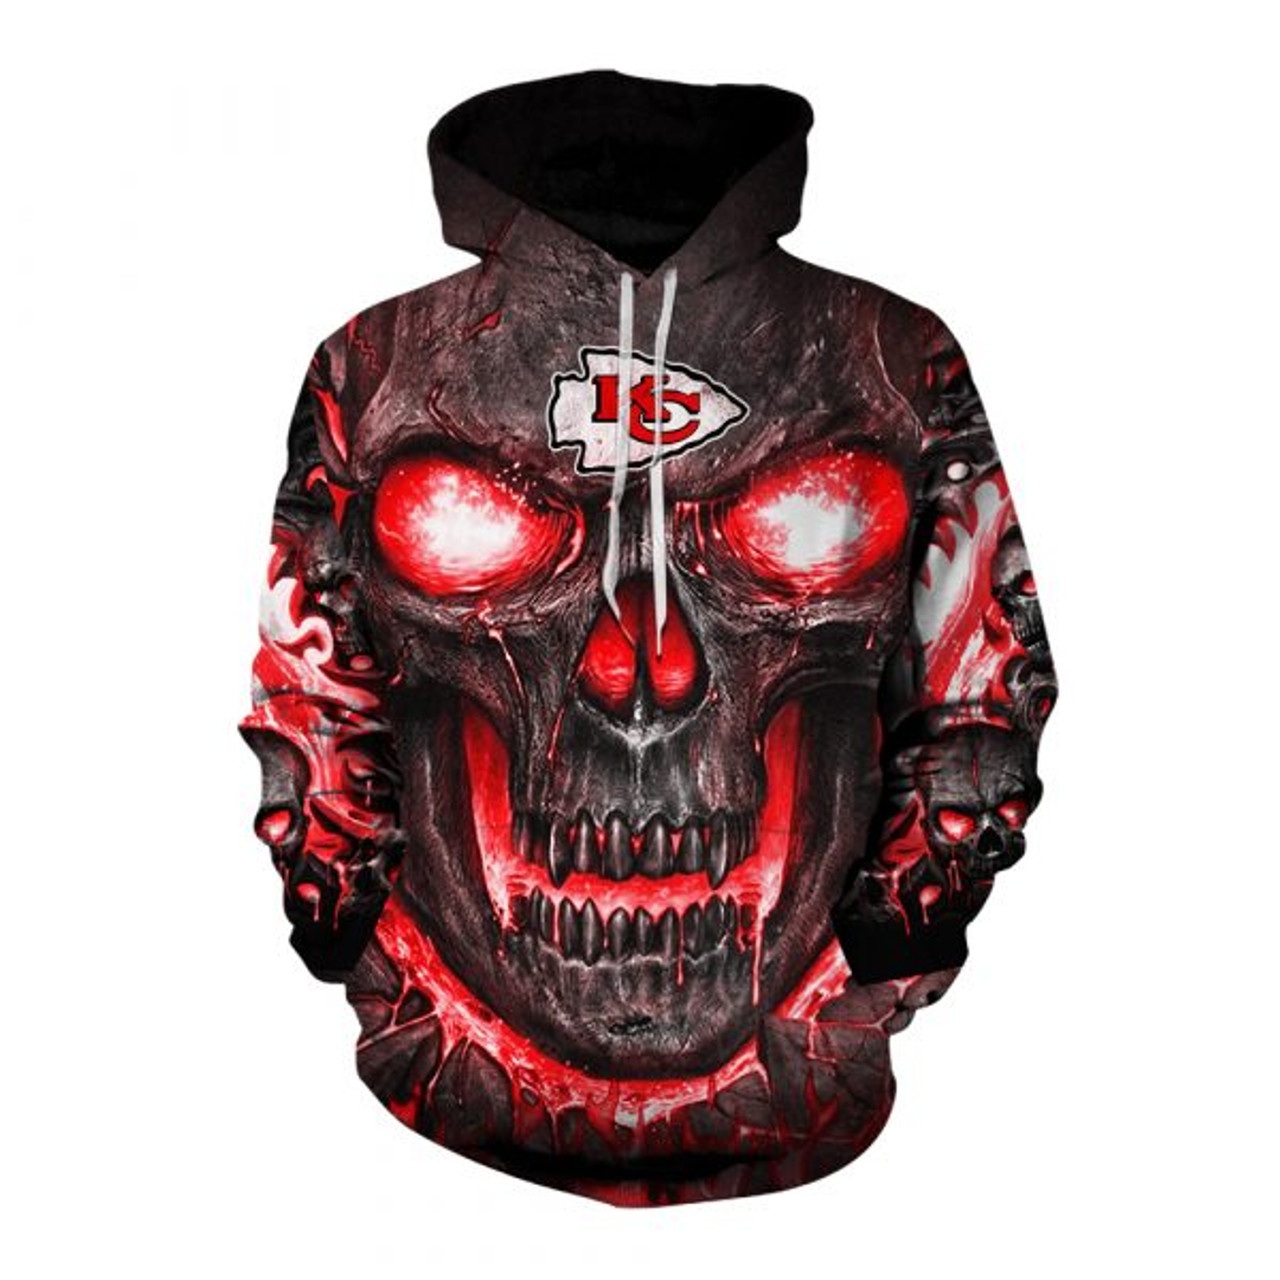 **(OFFICIAL-N.F.L.KANSAS-CITY-CHIEFS-TEAM-PULLOVER-HOODIES/CUSTOM-3D-CHIEFS-OFFICIAL-LOGOS & OFFICIAL-CLASSIC-CHIEFS-TEAM-COLORS/DETAILED-3D-GRAPHIC-PRINTED-DOUBLE-SIDED-DESIGN/PREMIUM-N.F.L.CHIEFS & BIG-FIREY-SKULL-THEMED-PULLOVER-HOODIES)**